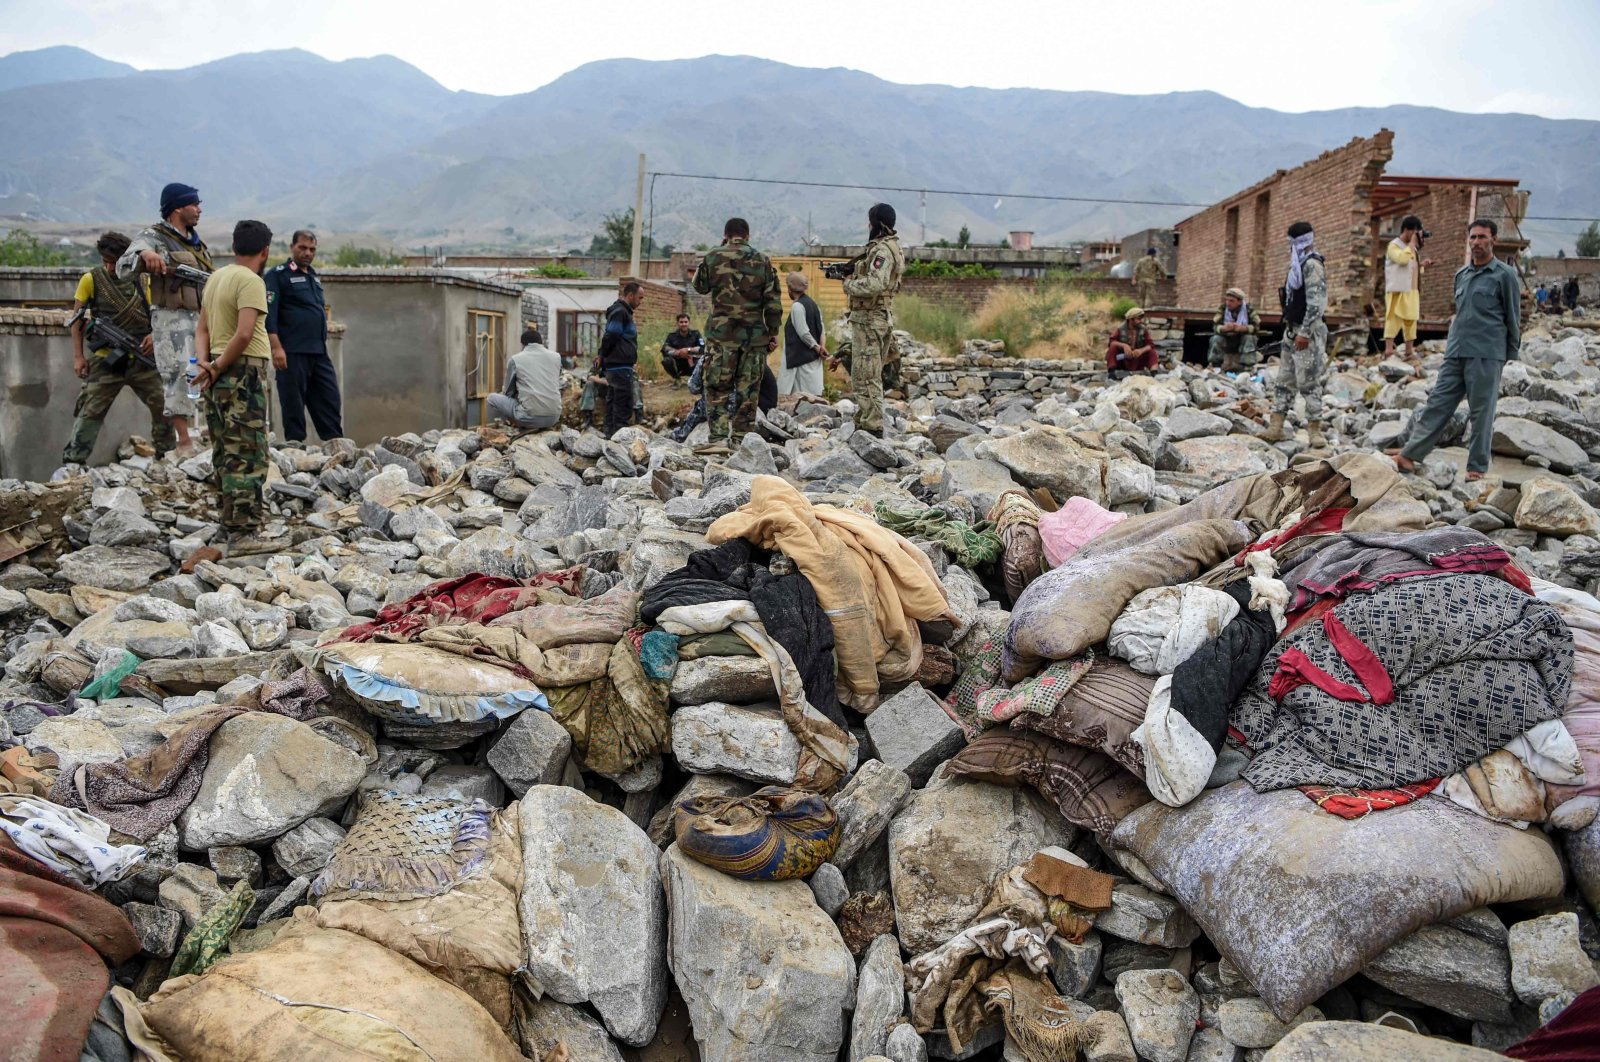 Villagers and security personnel gather after a flash flood affected the area at Sayrah-e-Hopiyan in Charikar, Parwan province, Afghanistan, Aug. 26, 2020. (AFP Photo)